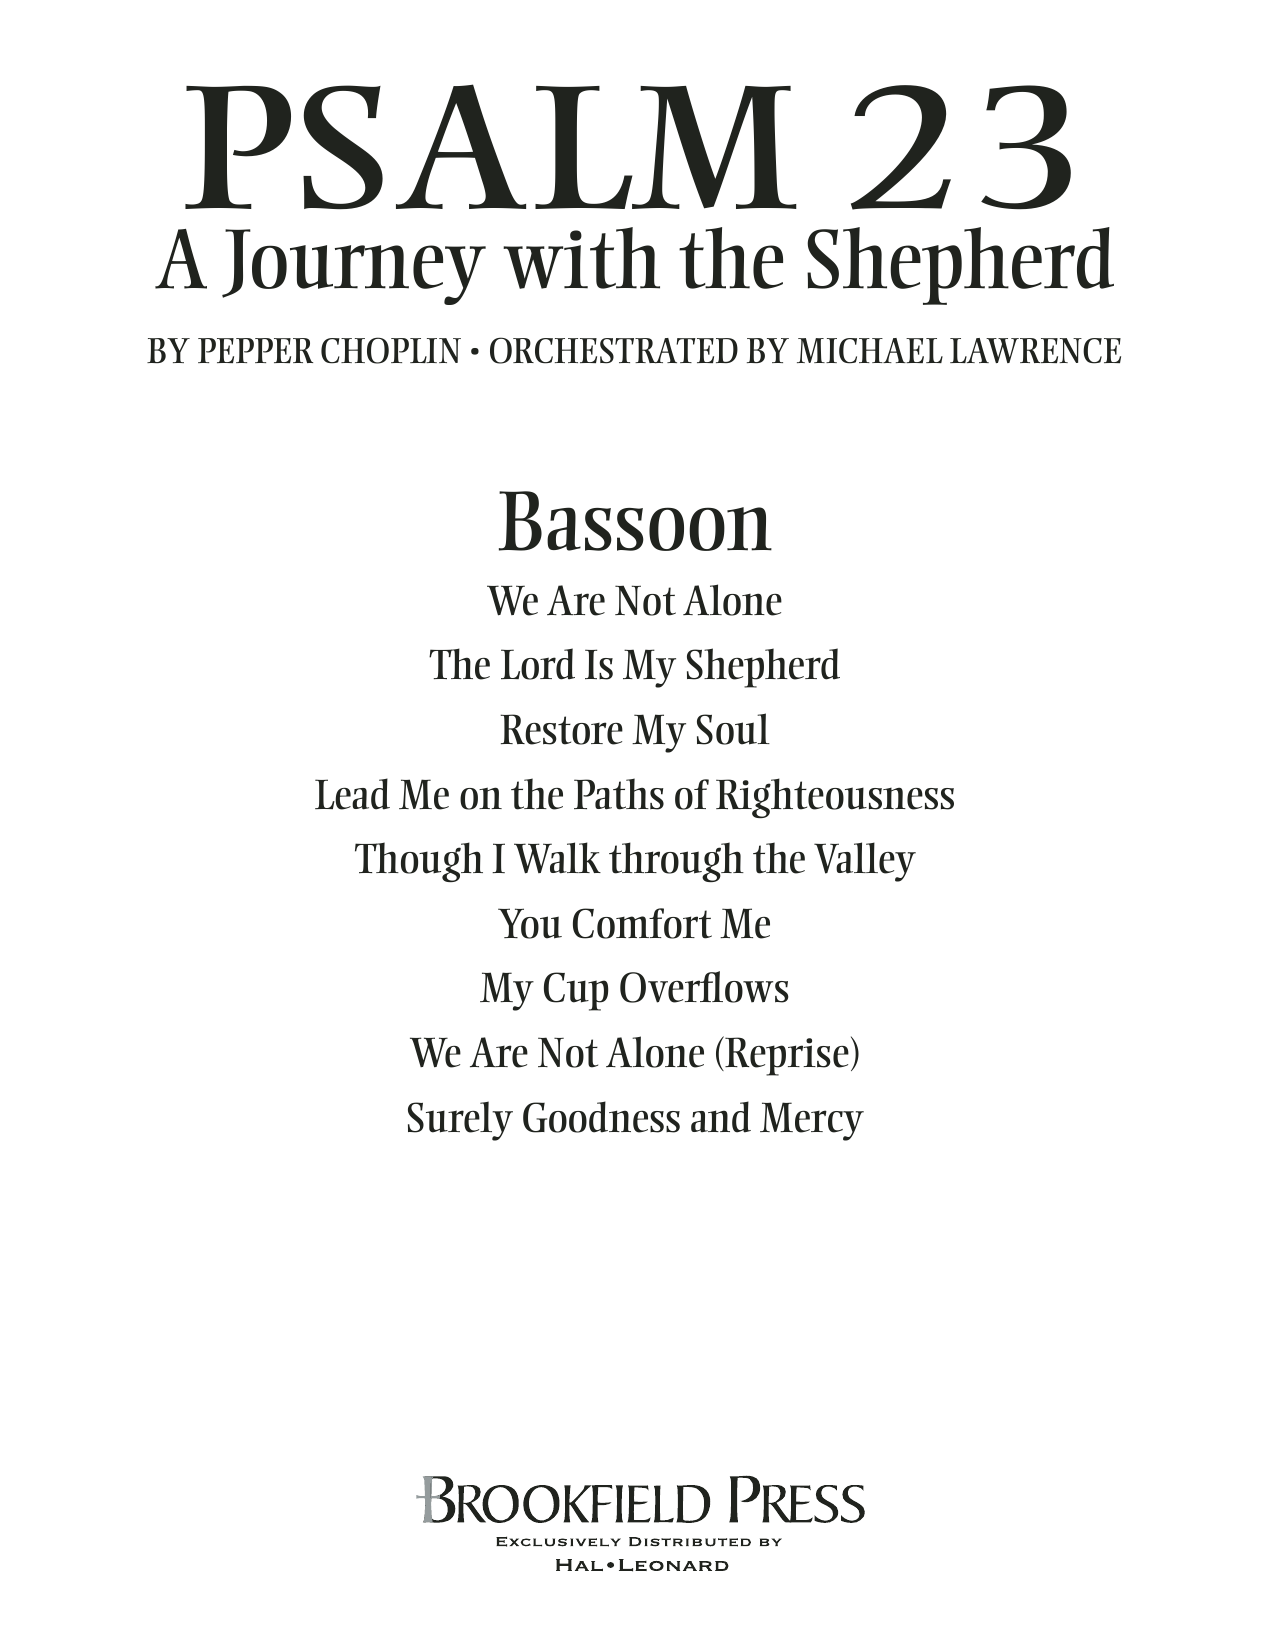 Psalm 23 - A Journey With The Shepherd - Bassoon Sheet Music